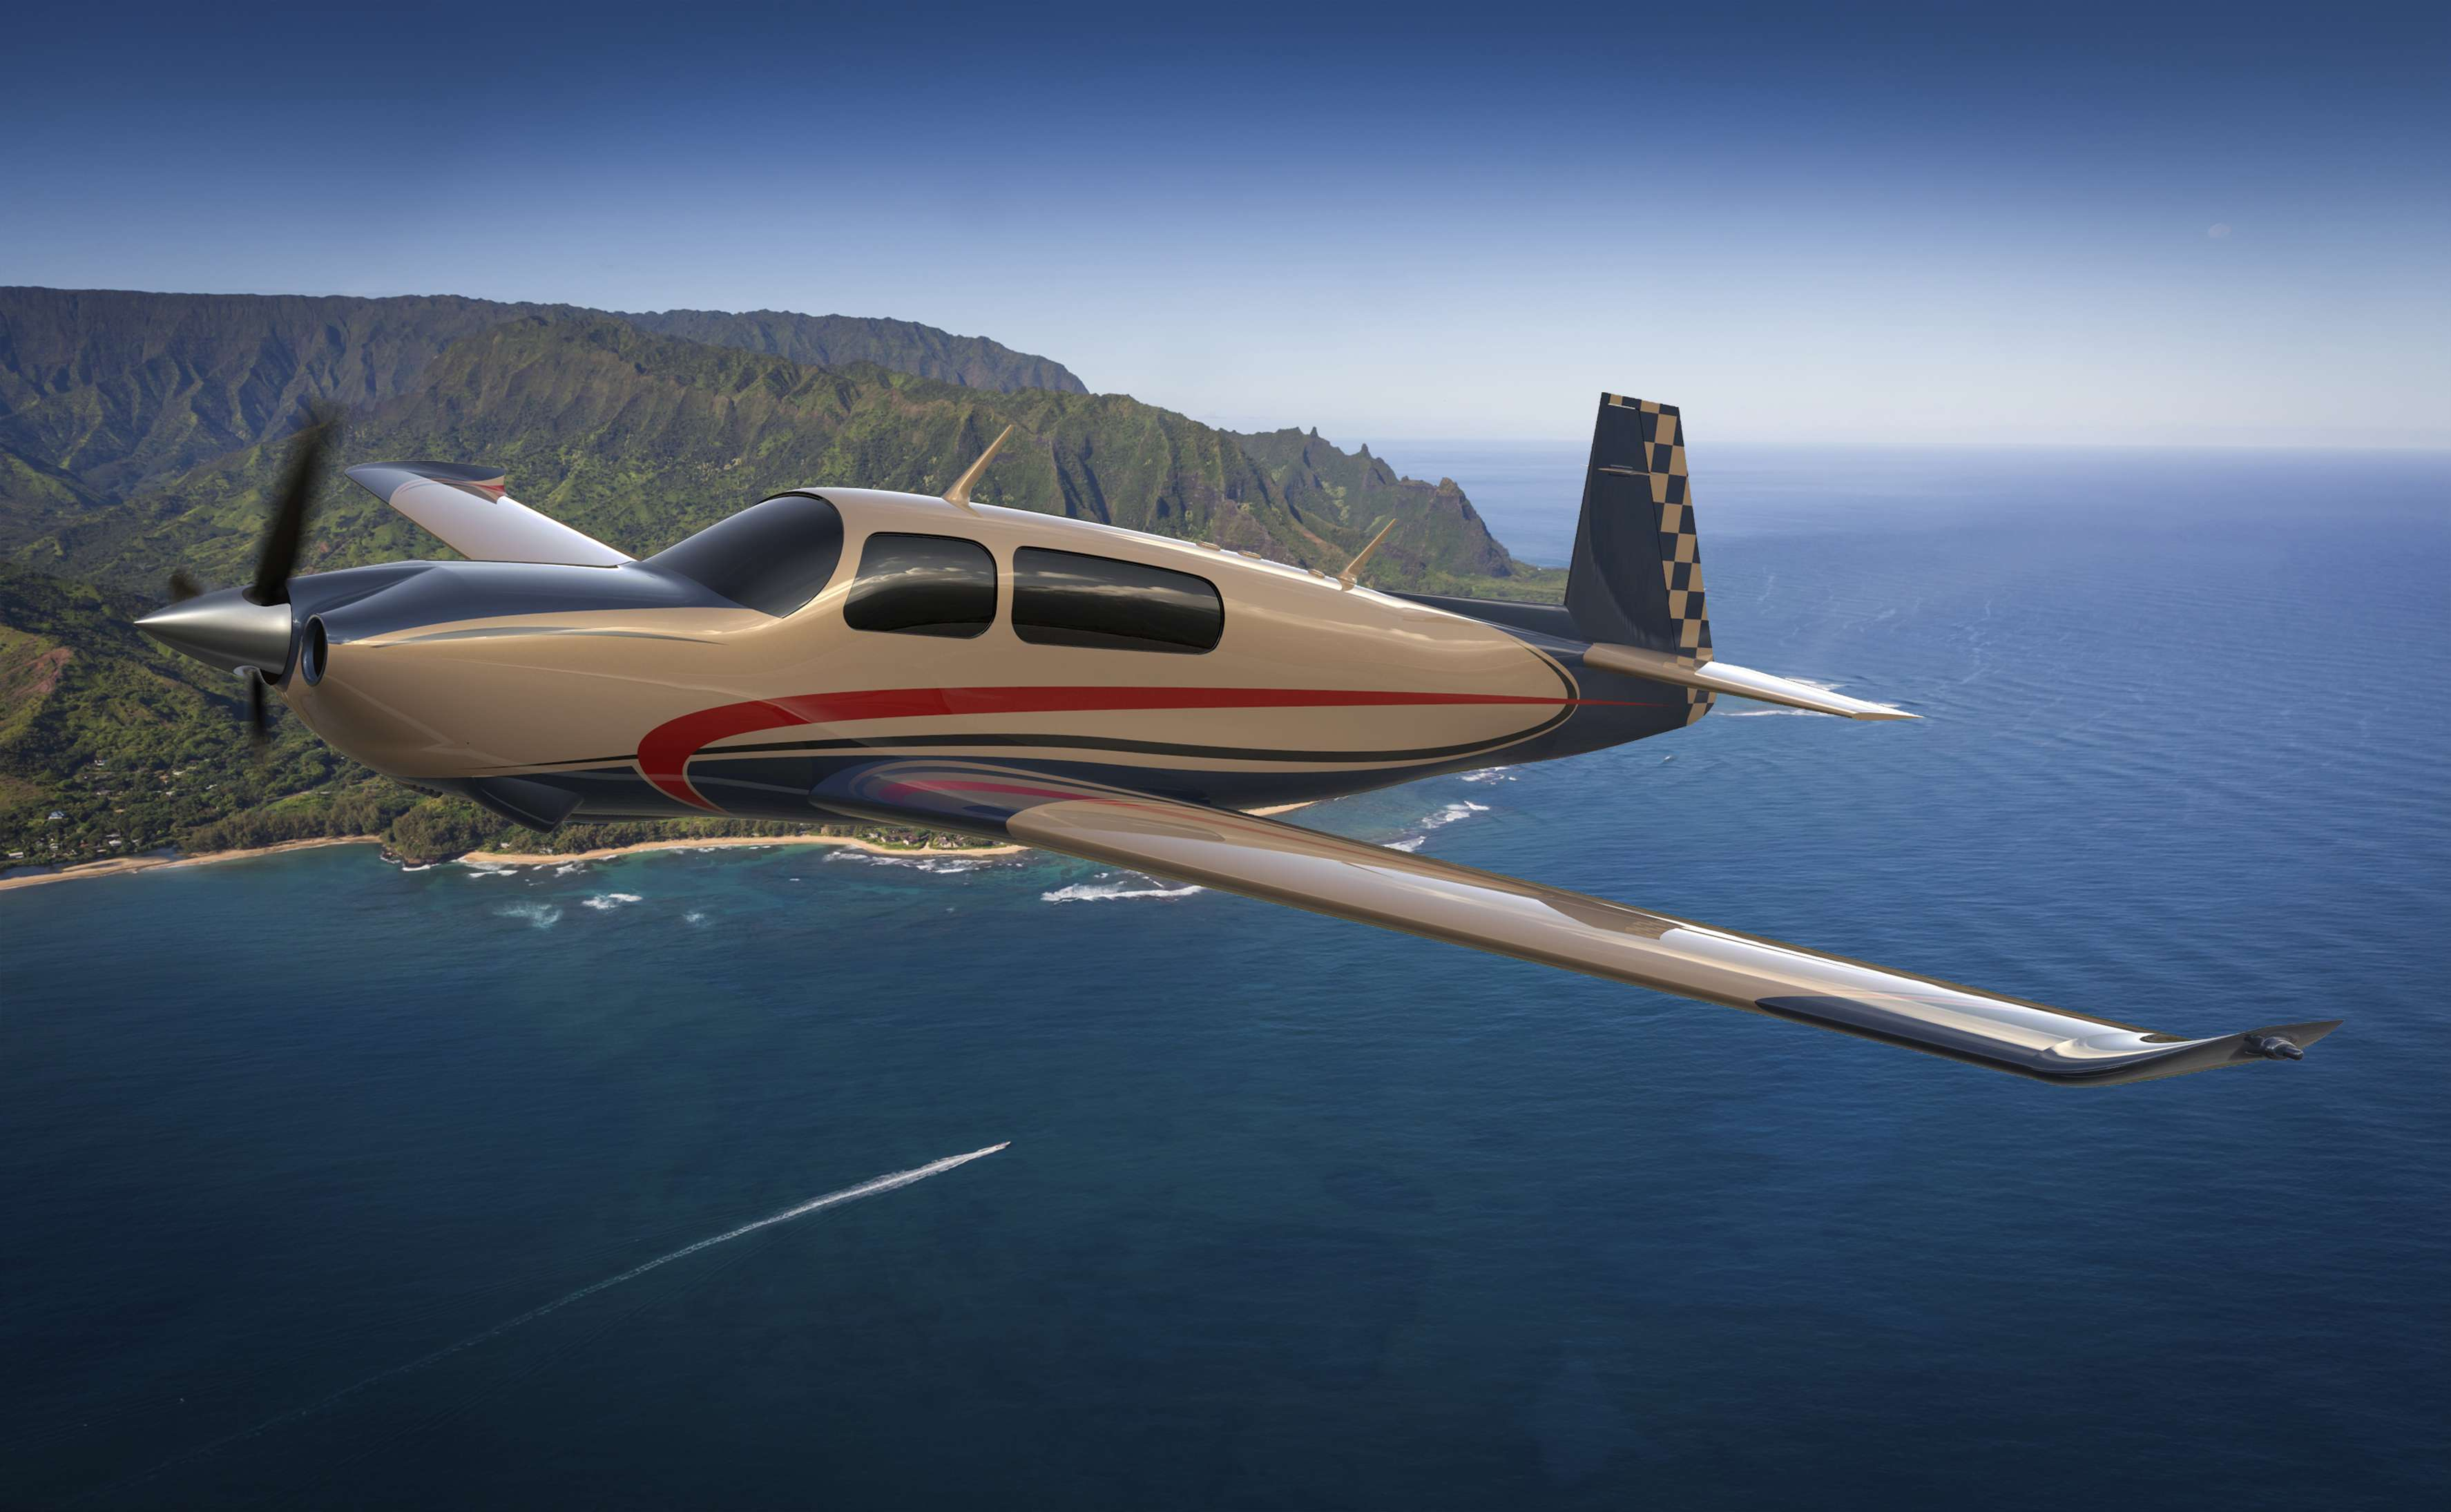 Mooney International Corporation All Rights Reserved